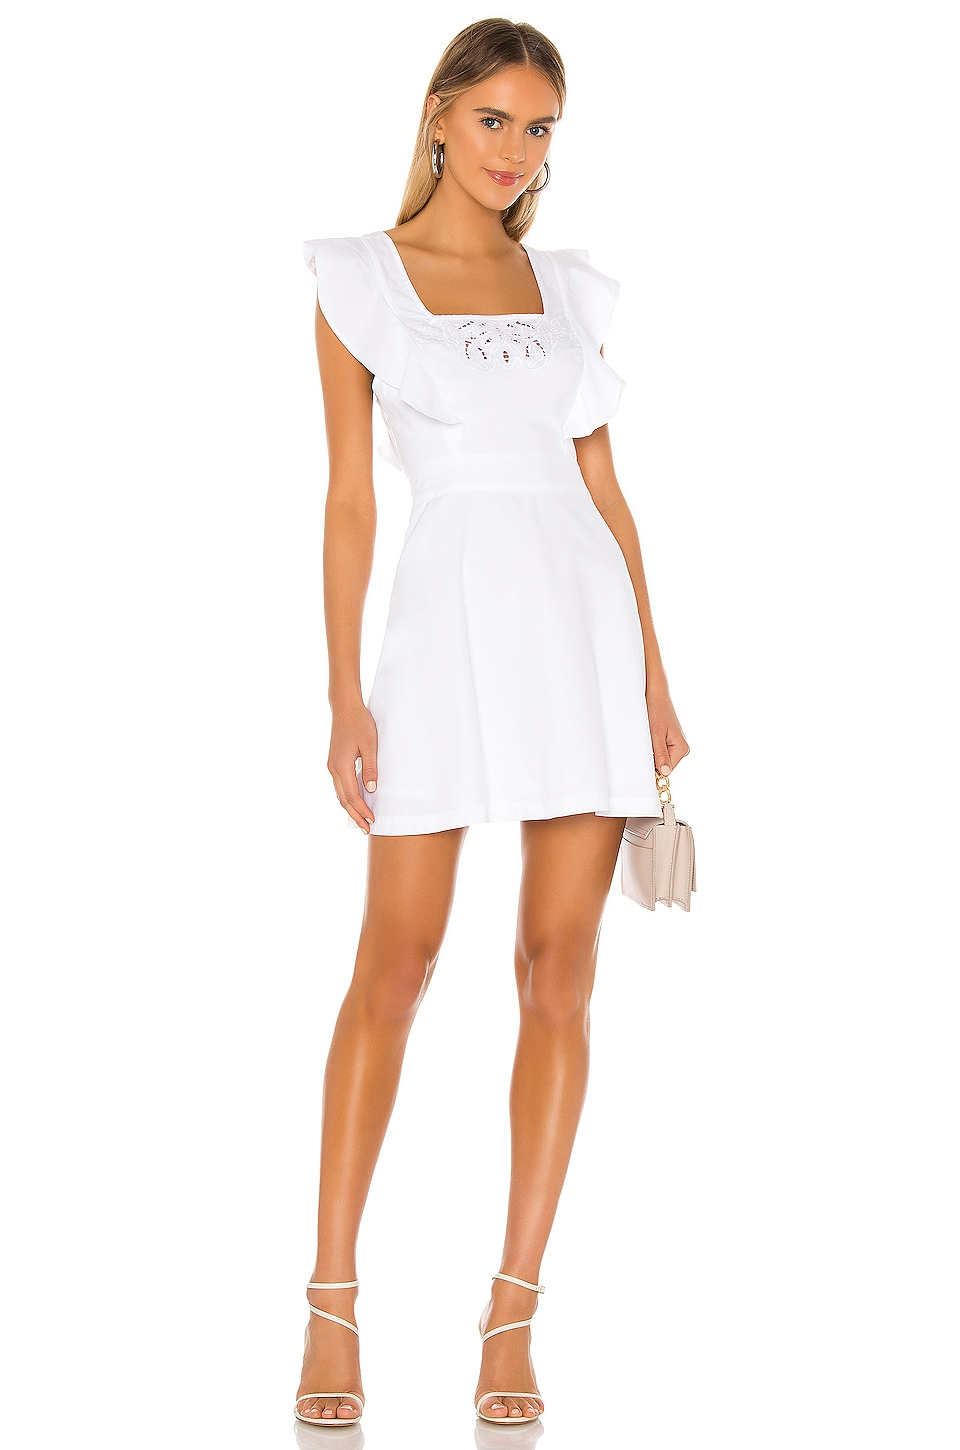 Tie Back Dress             BCBGeneration                                                                                                       CA$ 162.65 19